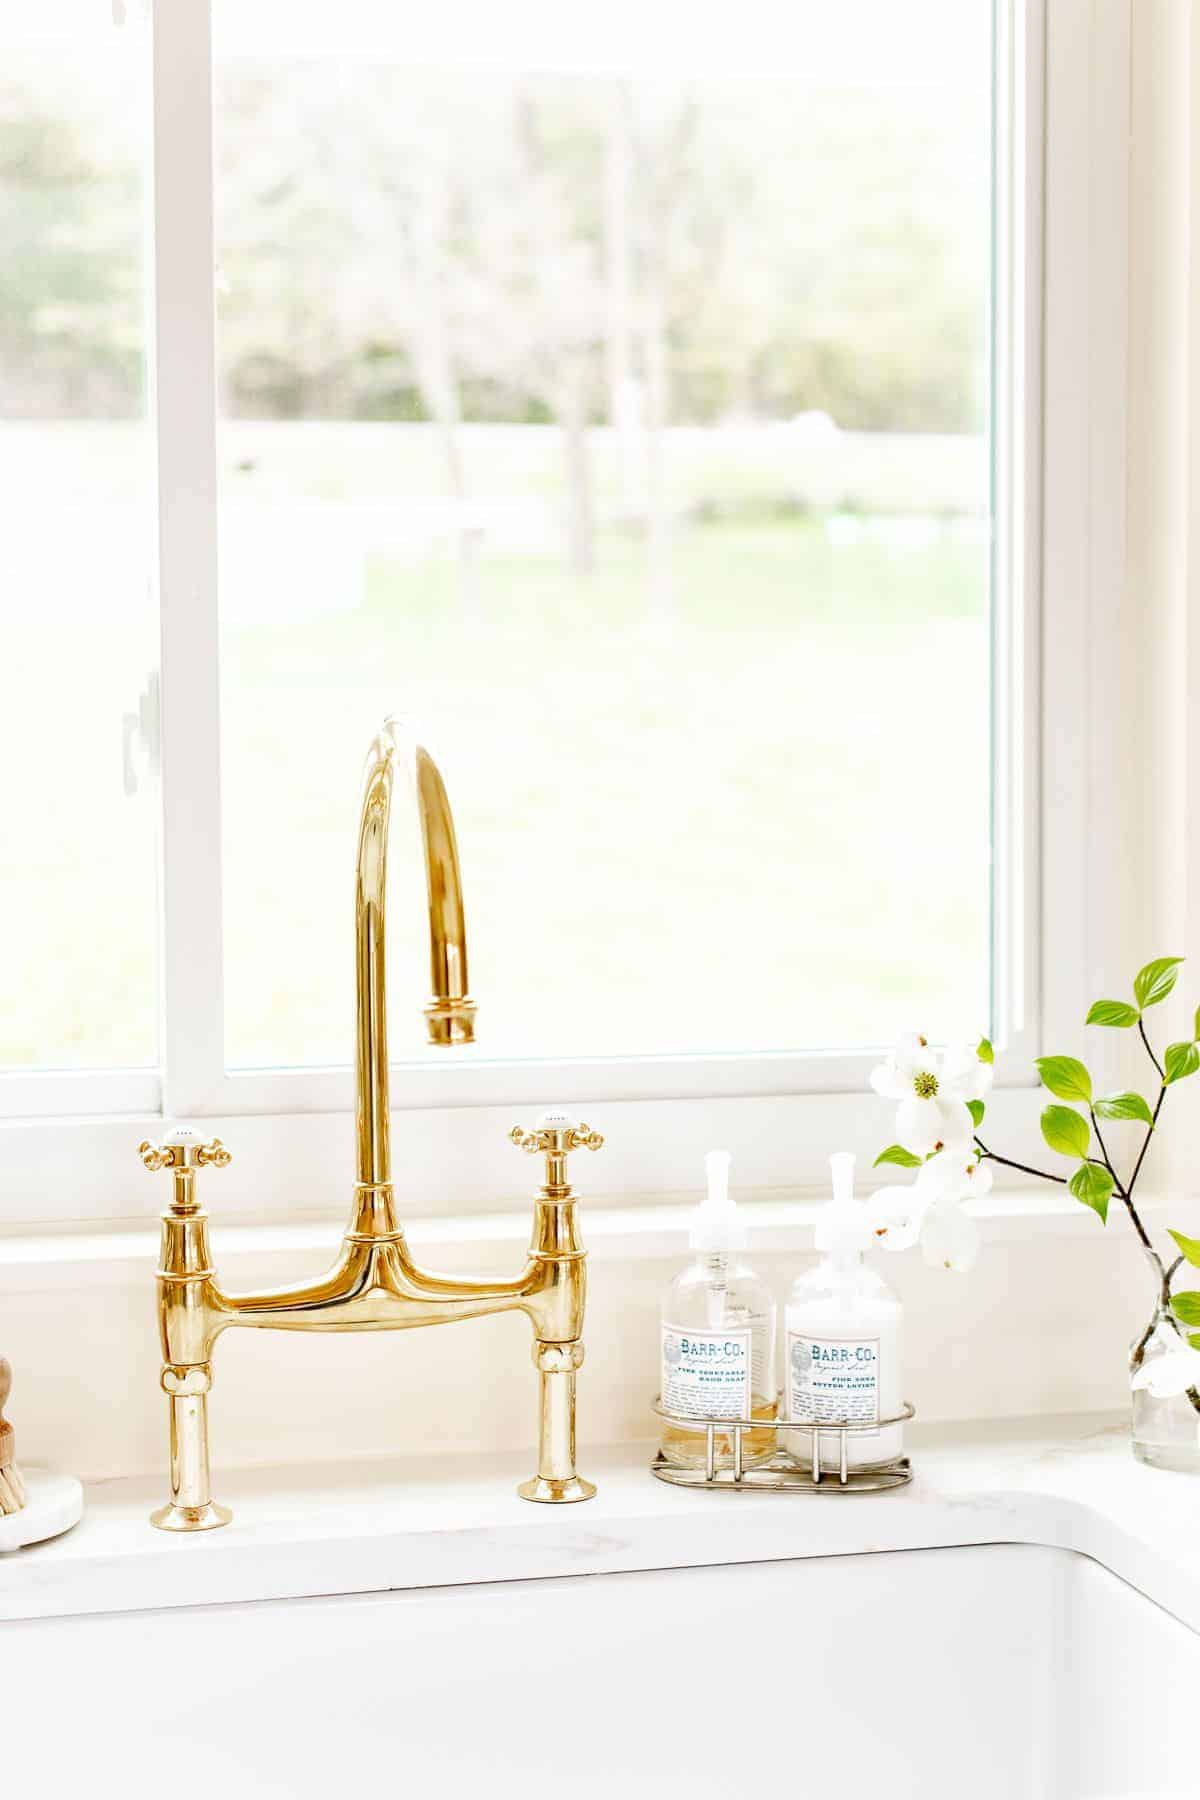 A white kitchen sink area with a brass bridge faucet, window over the sink and vase of flowers to the side.